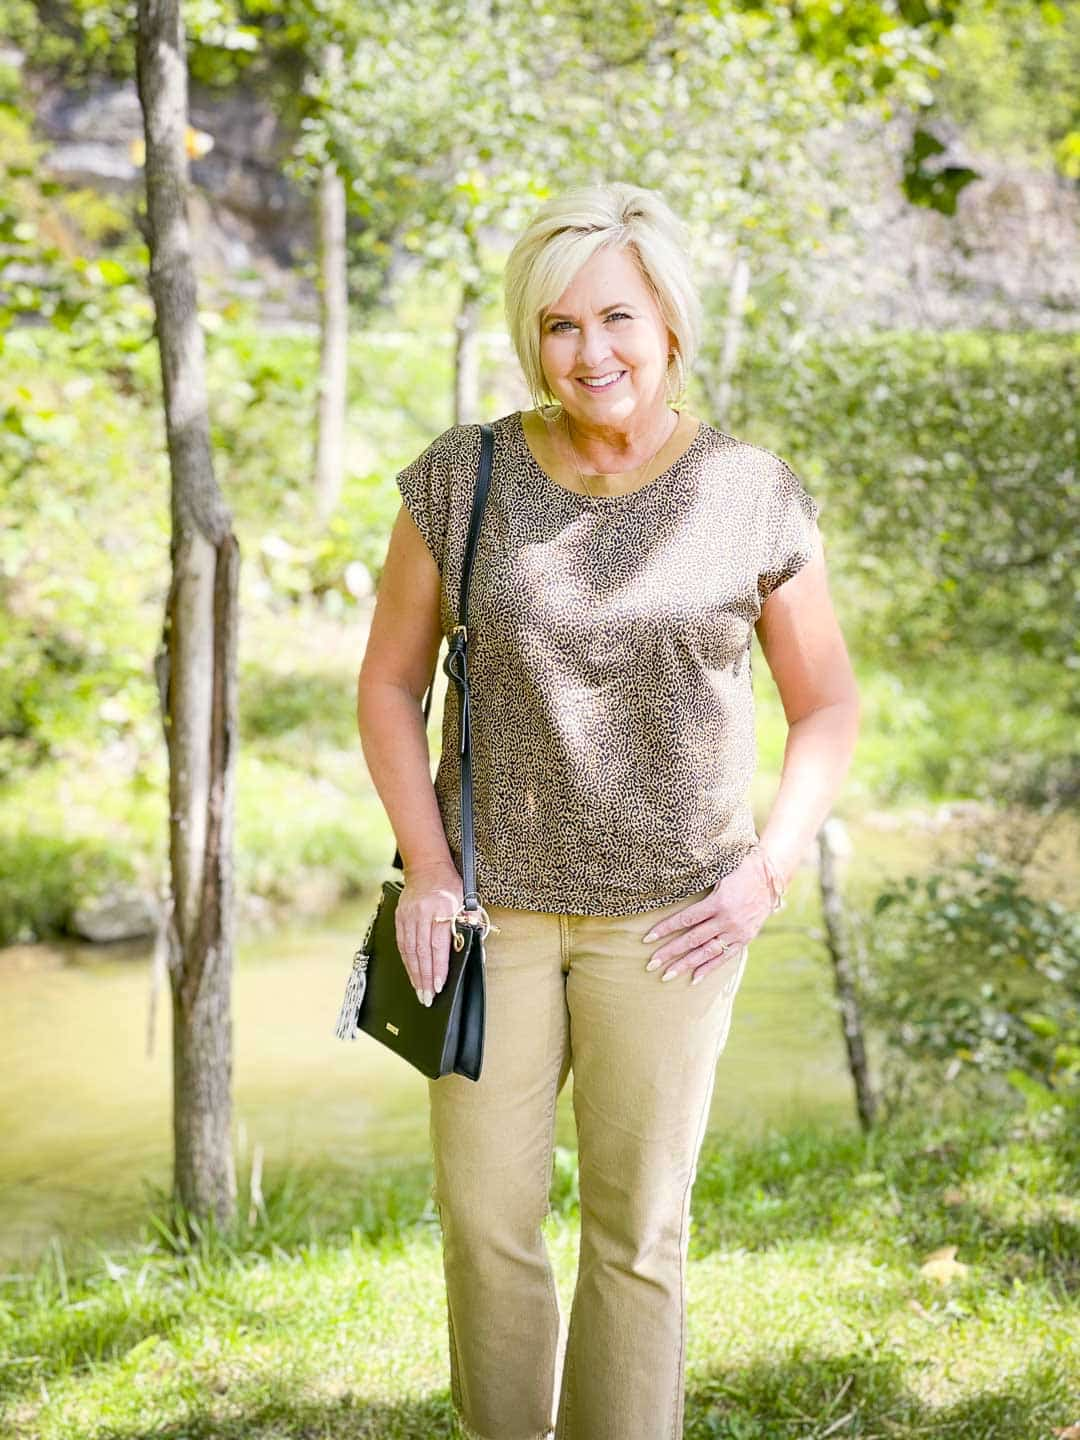 Over 40 Fashion Blogger, Tania Stephens is wearing animal print for fall, tan cropped jeans, and a black crossbody